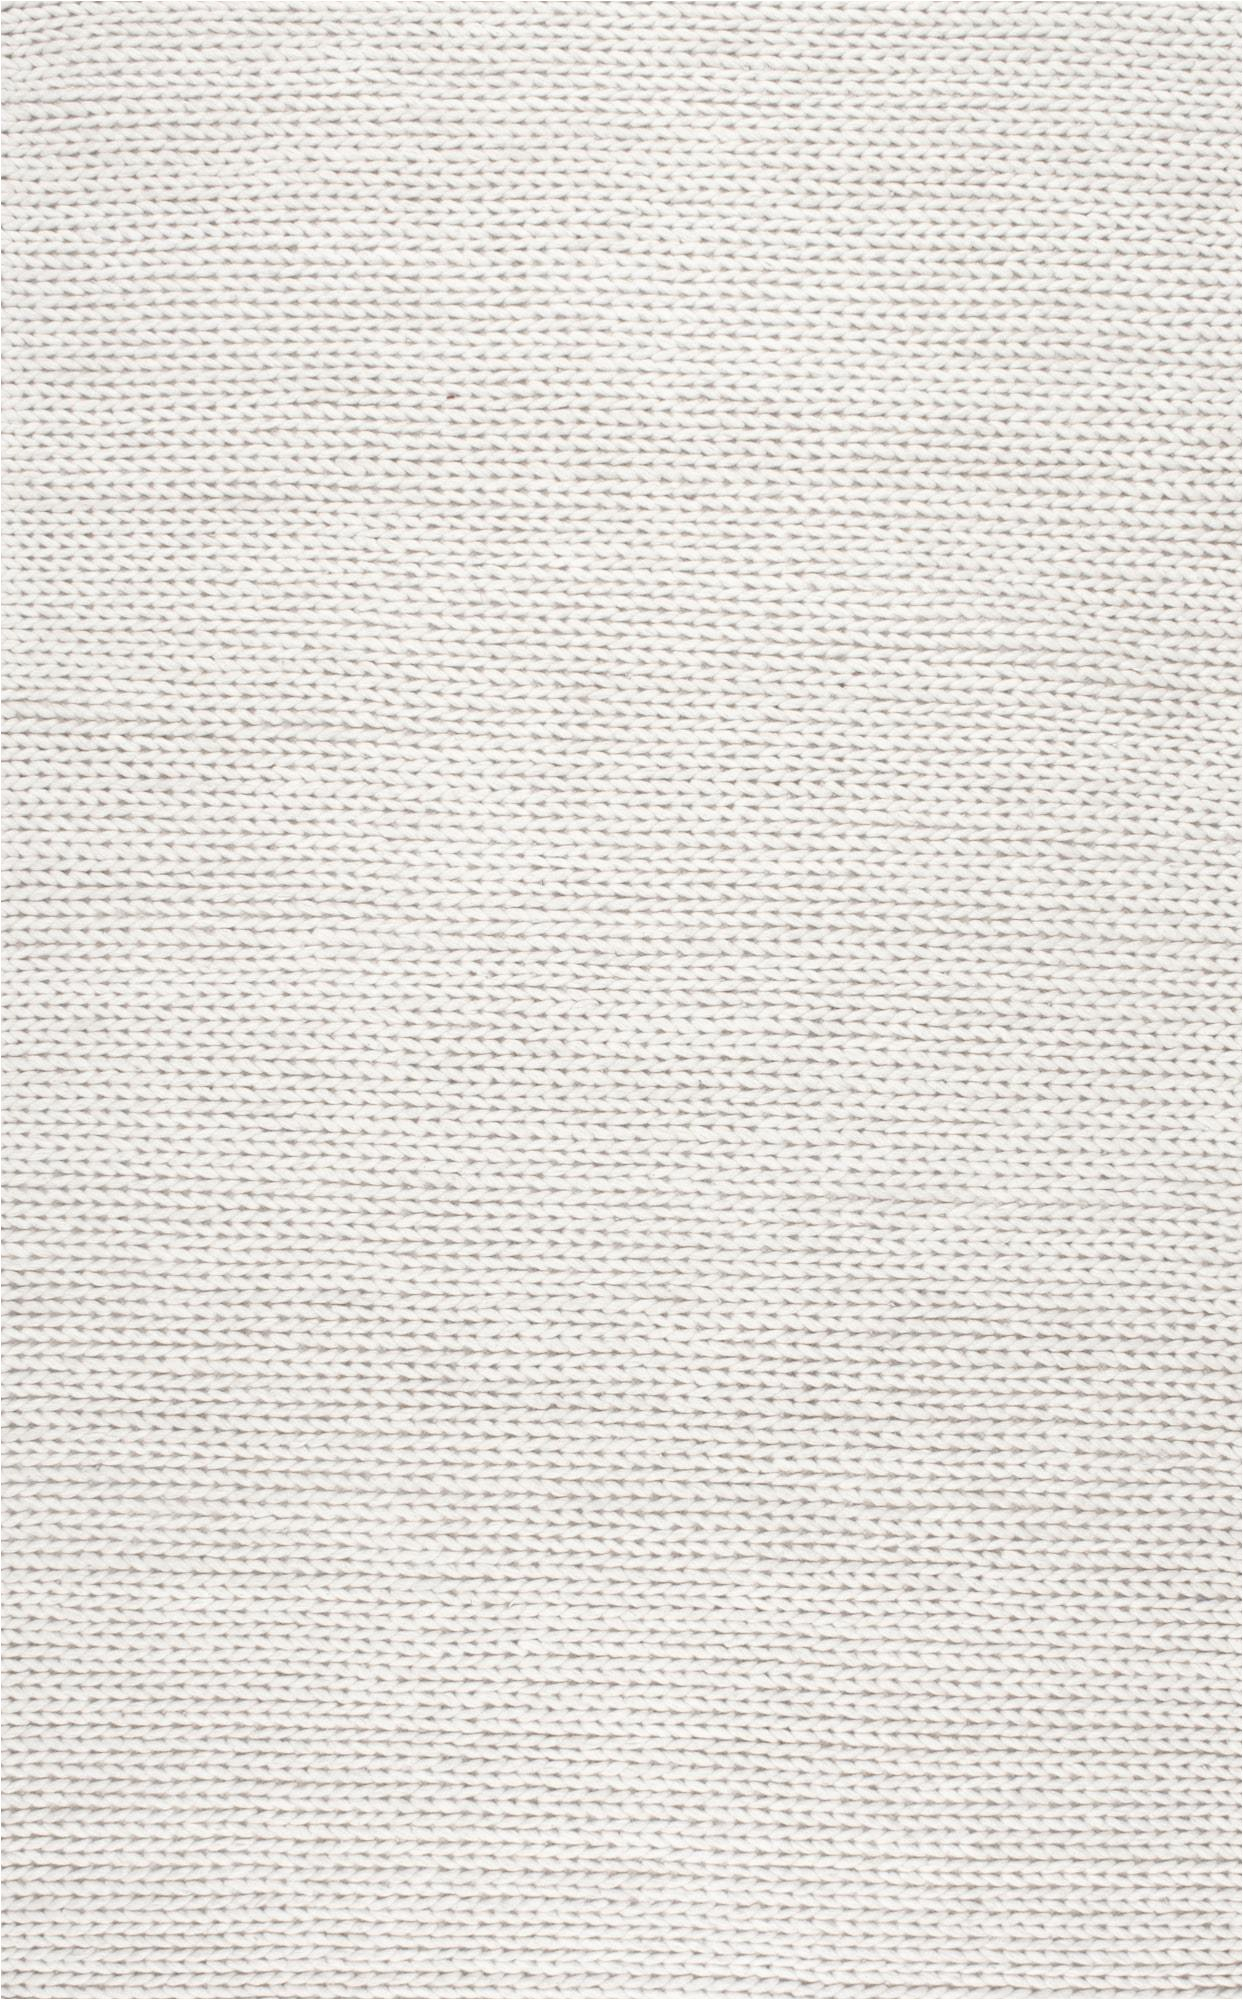 nuloom wool 8 x 10 rectangle area rugs in off white finish 200cb01 8010